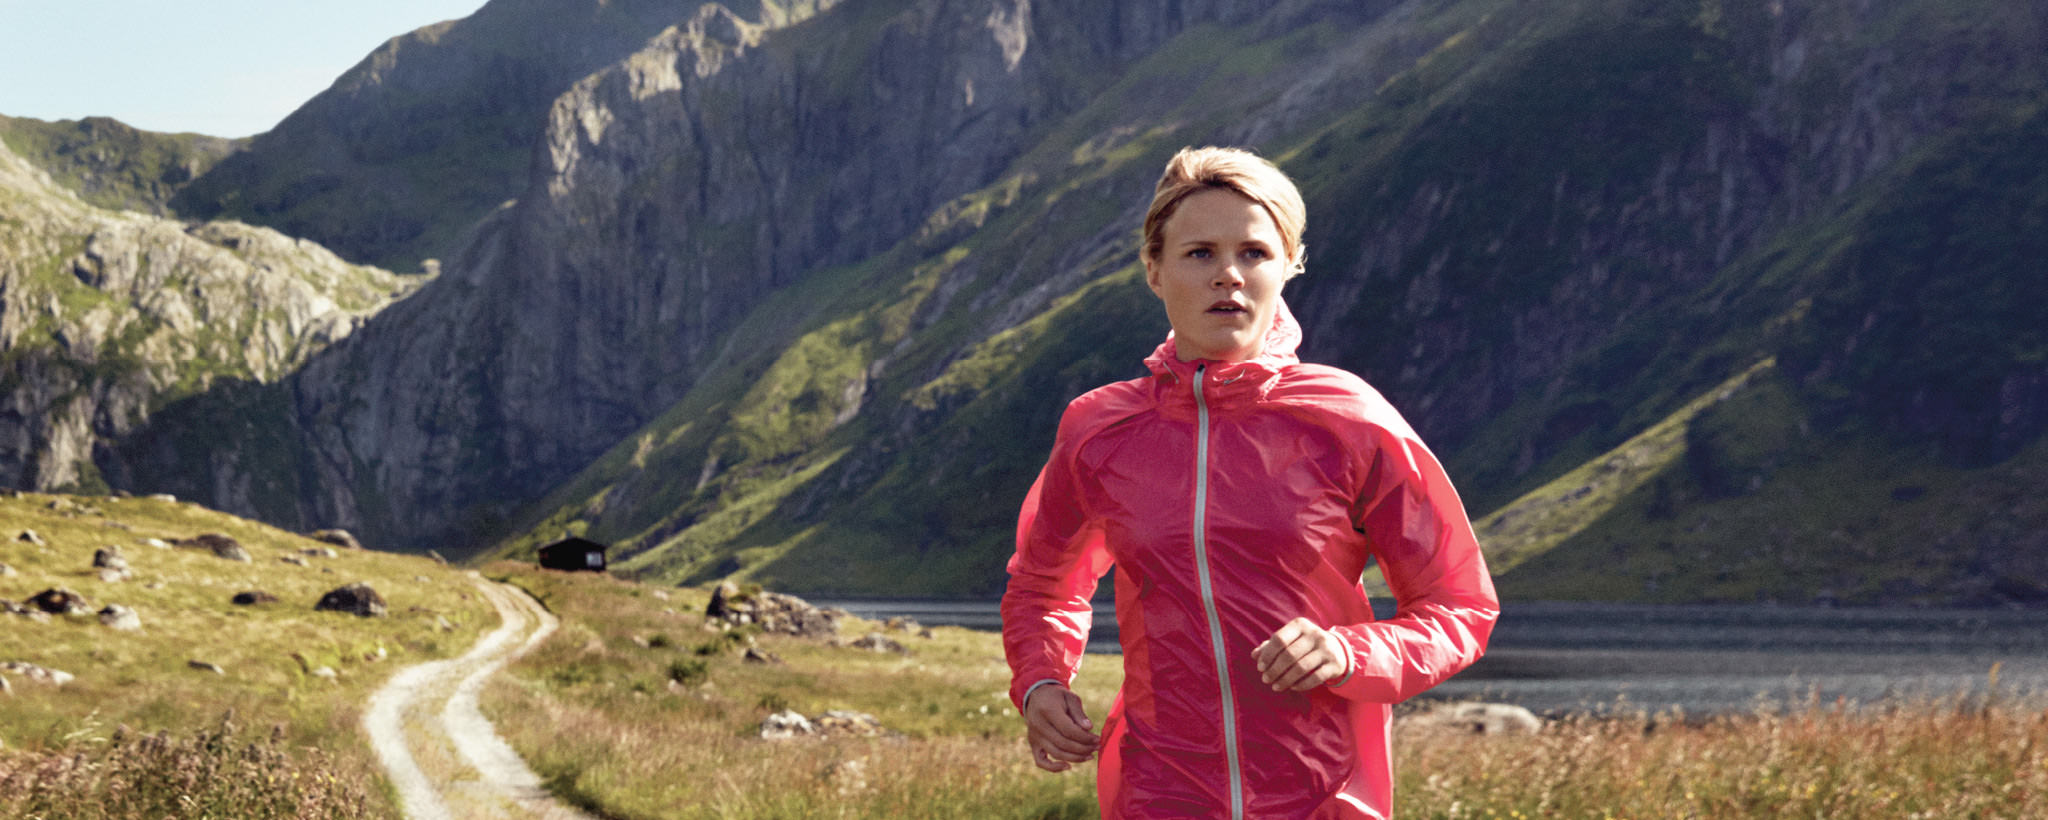 Lady running in Helly Hansen clothing